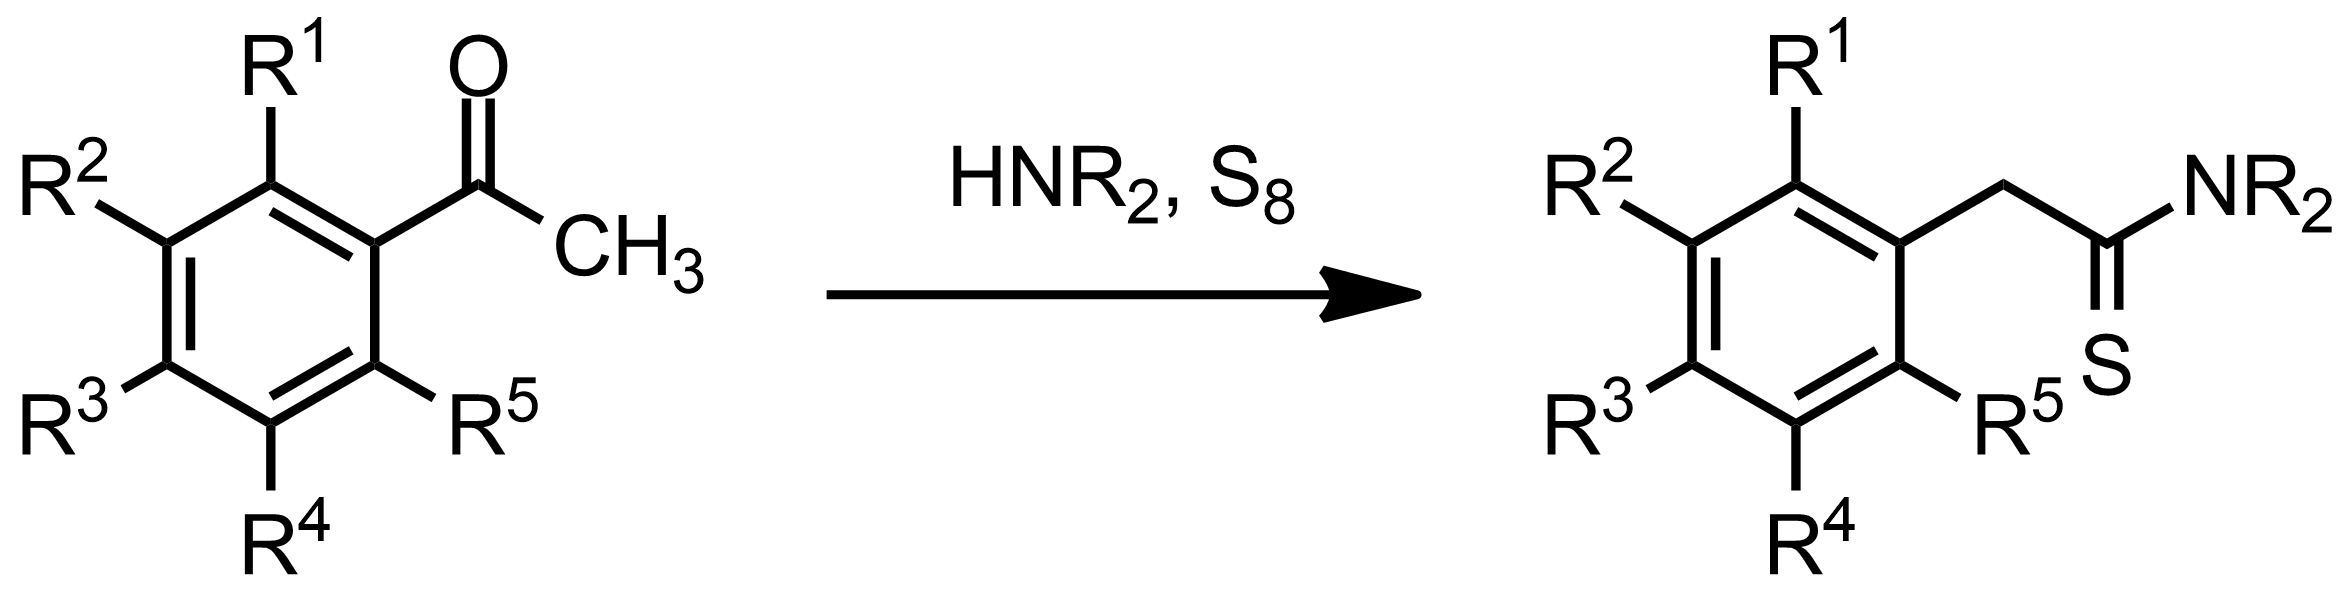 Schematic representation of the Willgerodt-Kindler Reaction.